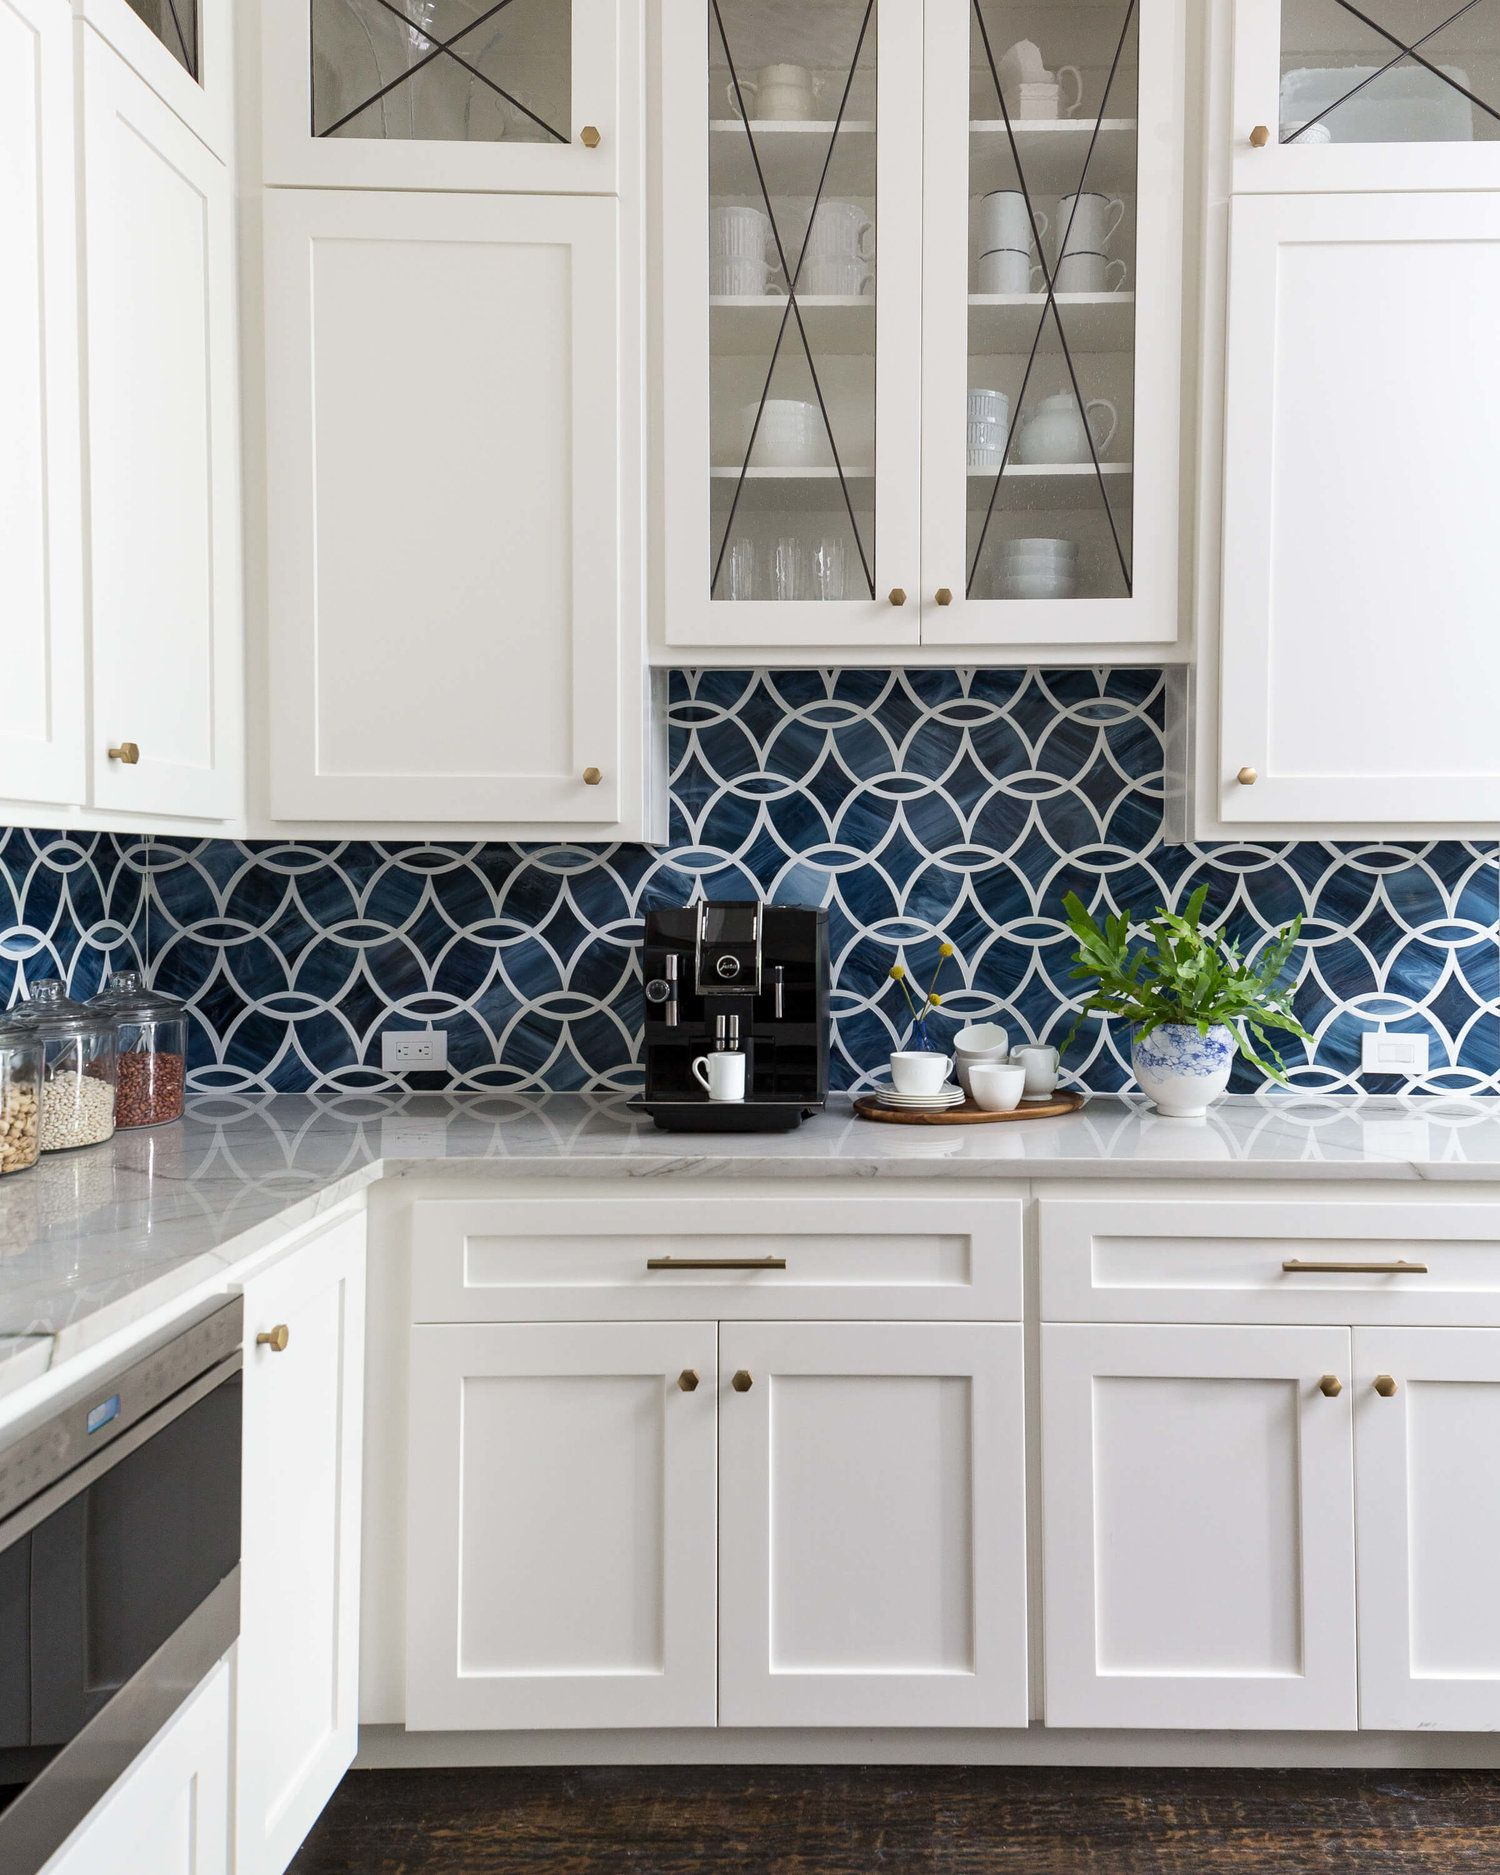 Before And After A Dramatic Kitchen And Family Room Makeover You Really Must See Designed Blue Backsplash Kitchen Kitchen Cabinet Design White Kitchen Design